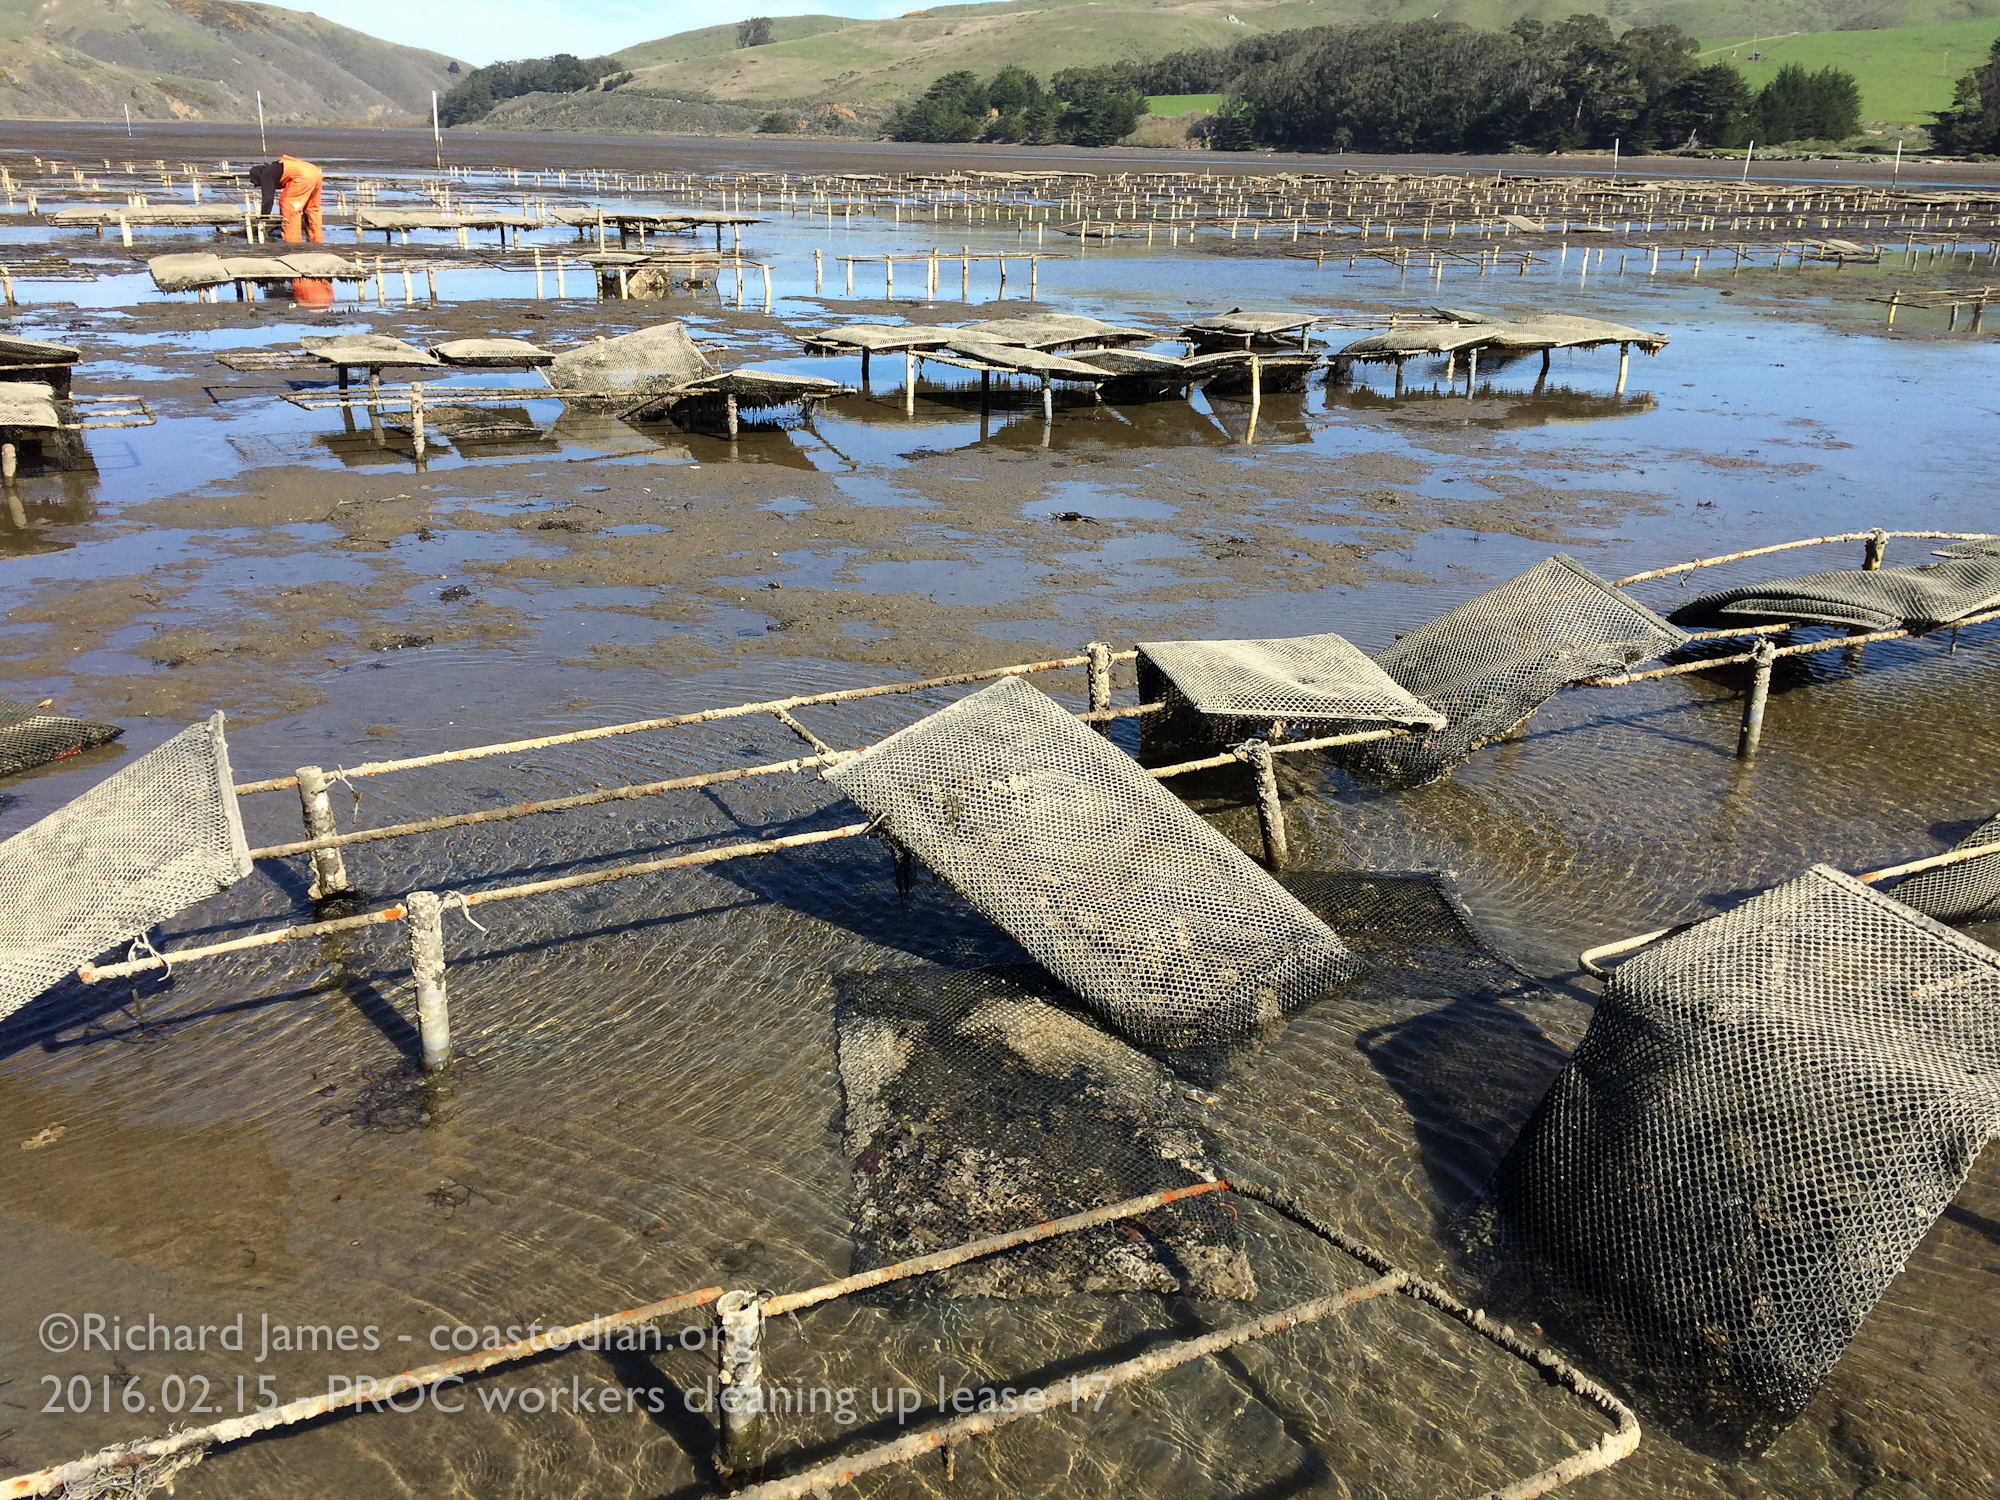 PROC workers undoing years of neglect in Tomales Bay at Walker Creek. ©Richard James - coastodian.org